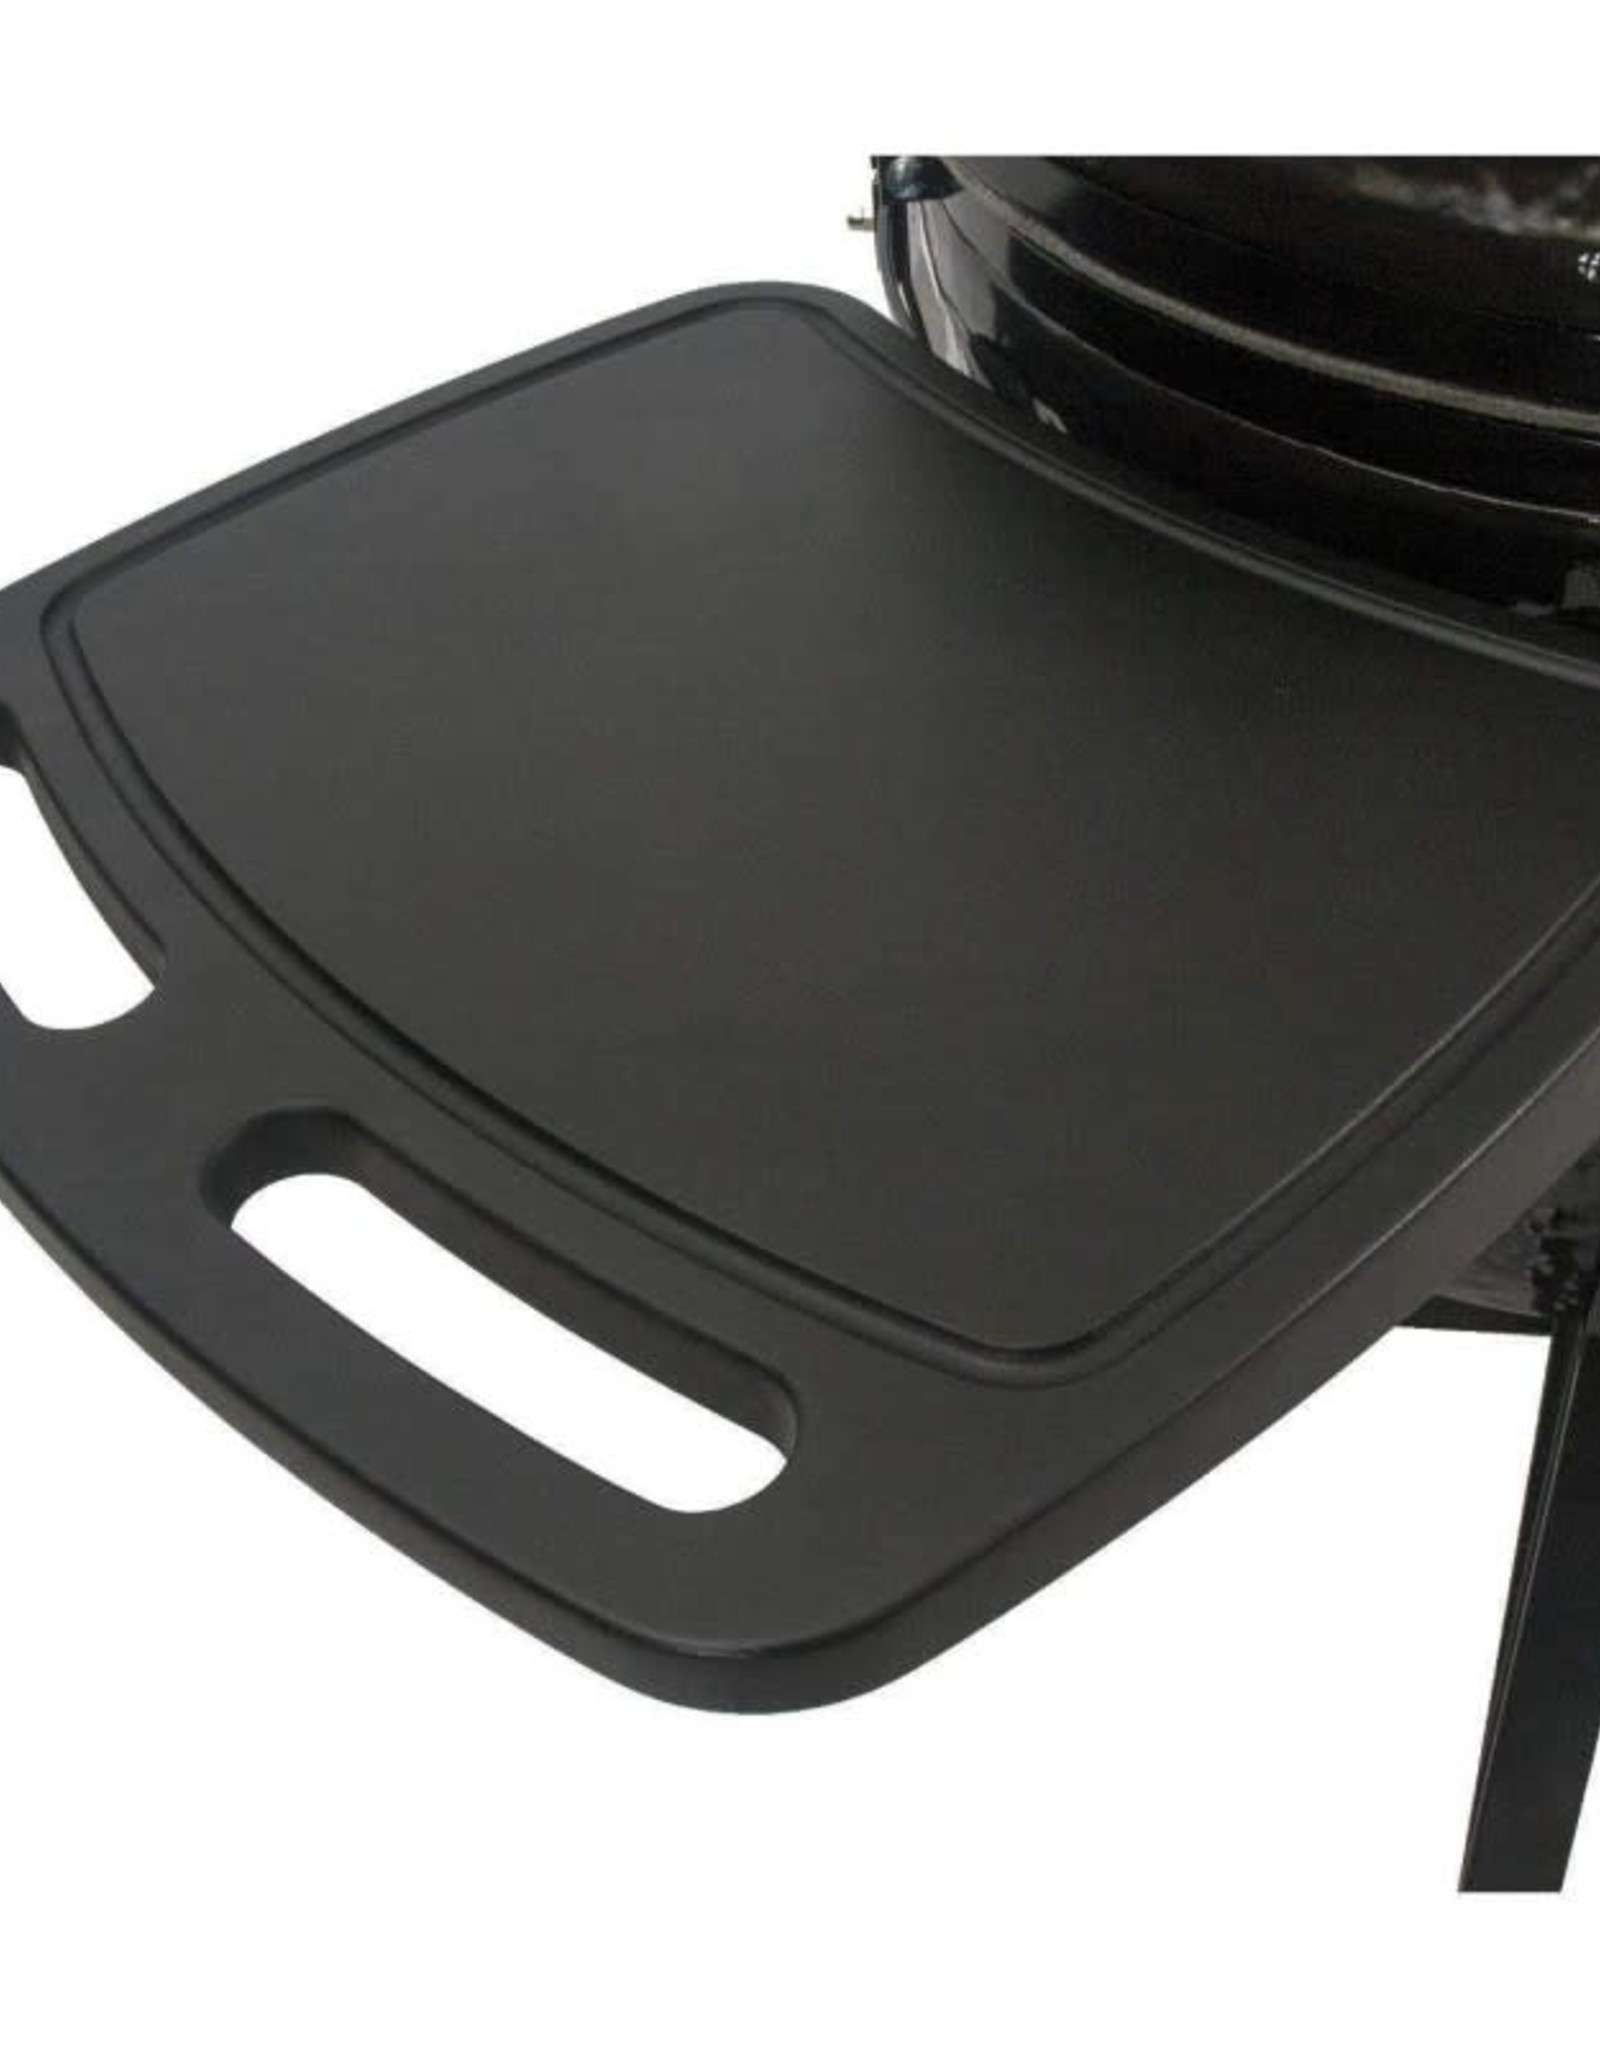 Primo Ceramic Grills Primo Oval XL 400 All-In-One (Heavy Duty Stand, Side Shelves, Ash Tool, & Grate Lifter) #7800